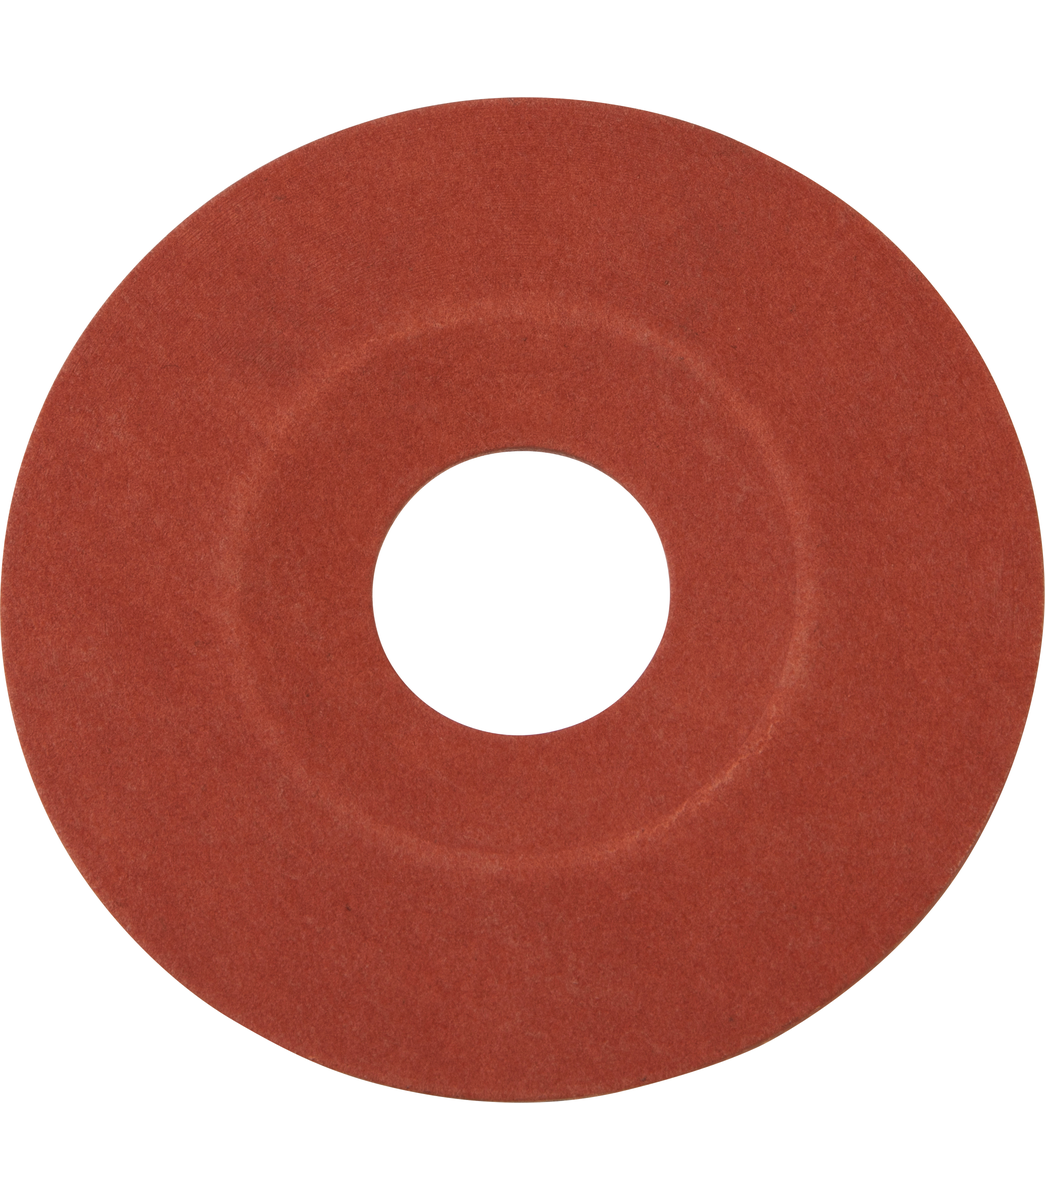 "JAT-700, 3"" BACKING PLATE"